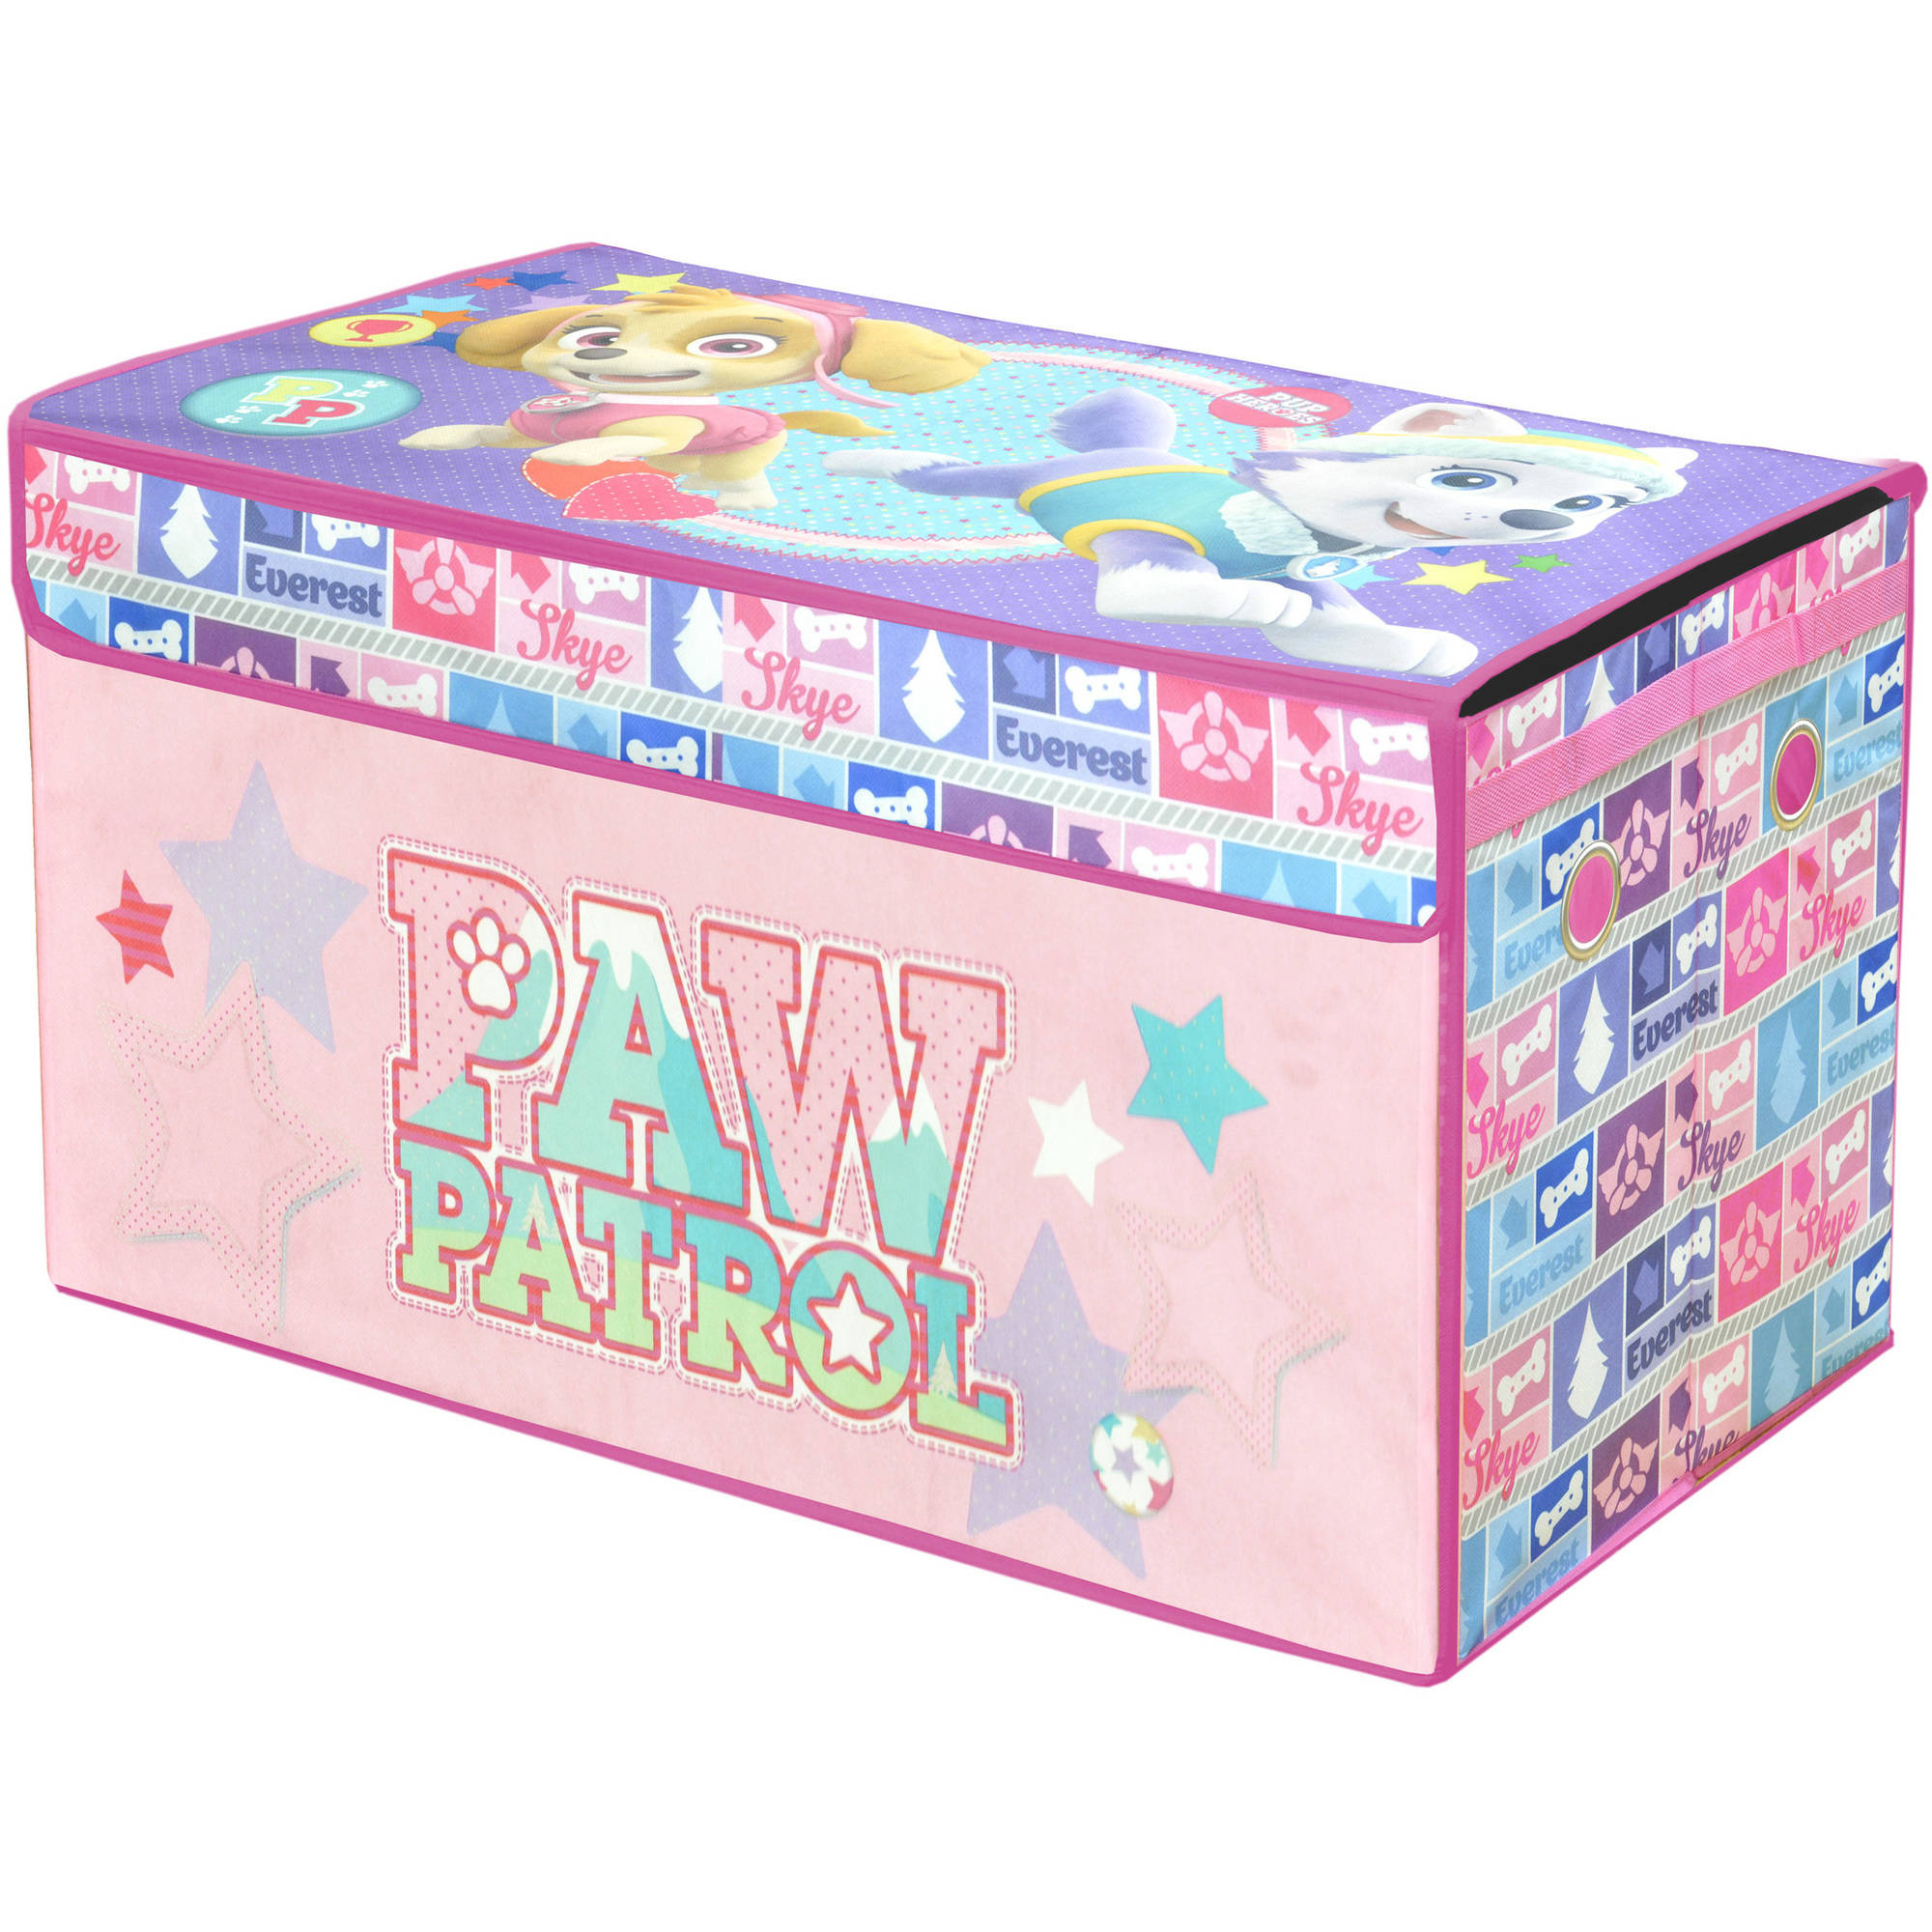 Nickelodeon Paw Patrol Girls Oversized Soft Collapsible Storage Toy Trunk